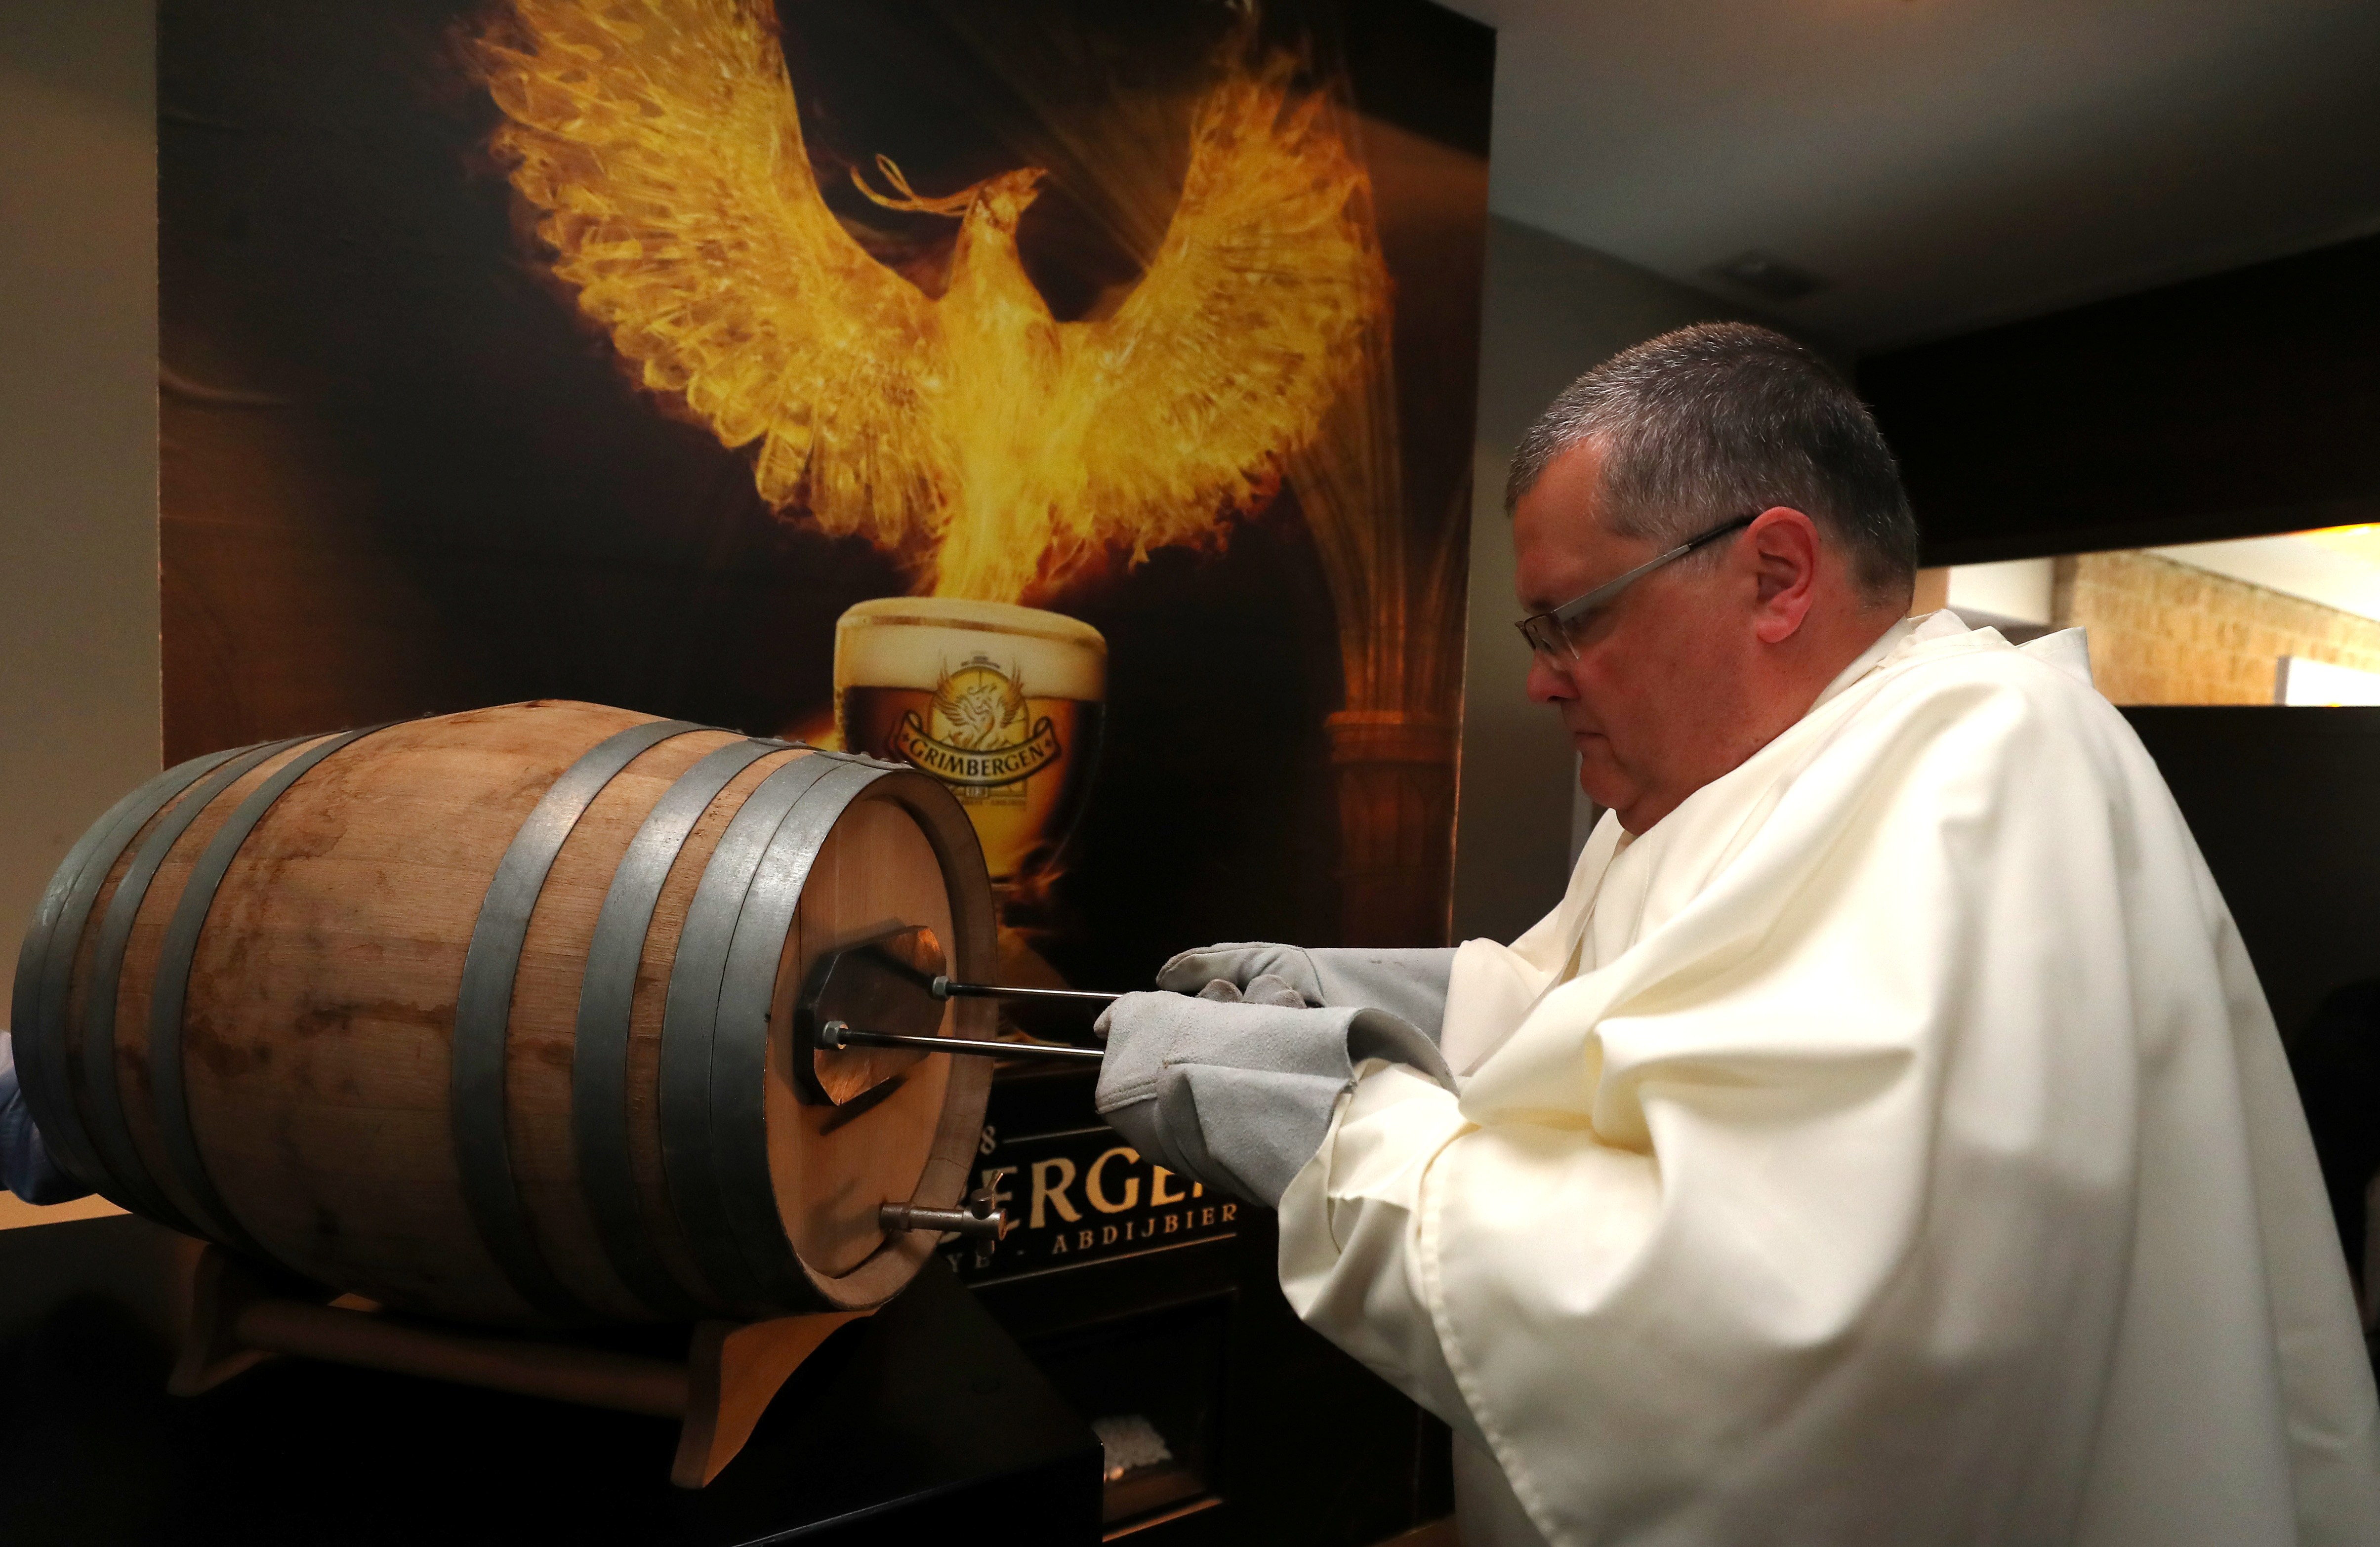 Norbertine Father Karel marks a barrel of Grimbergen beer, symbolised by a phoenix, at the Belgian Abbey of Grimbergen after announcing that the monks will return to brewing after a break of two centuries, in Grimbergen, Belgium May 21, 2019. REUTERS/Yves Herman